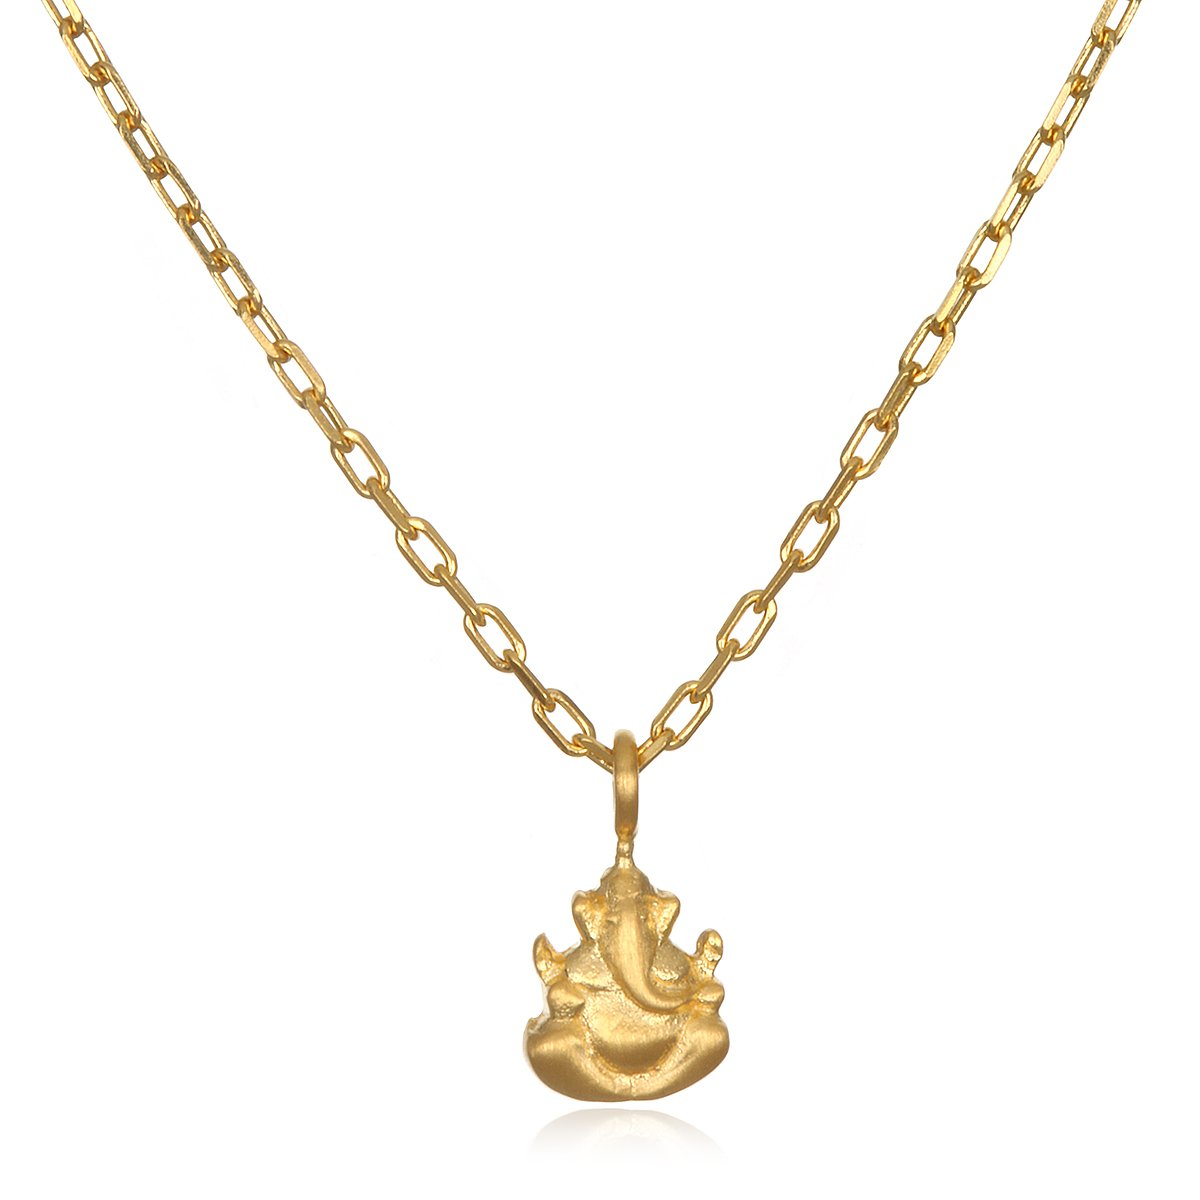 Blessed Prosperity Necklace